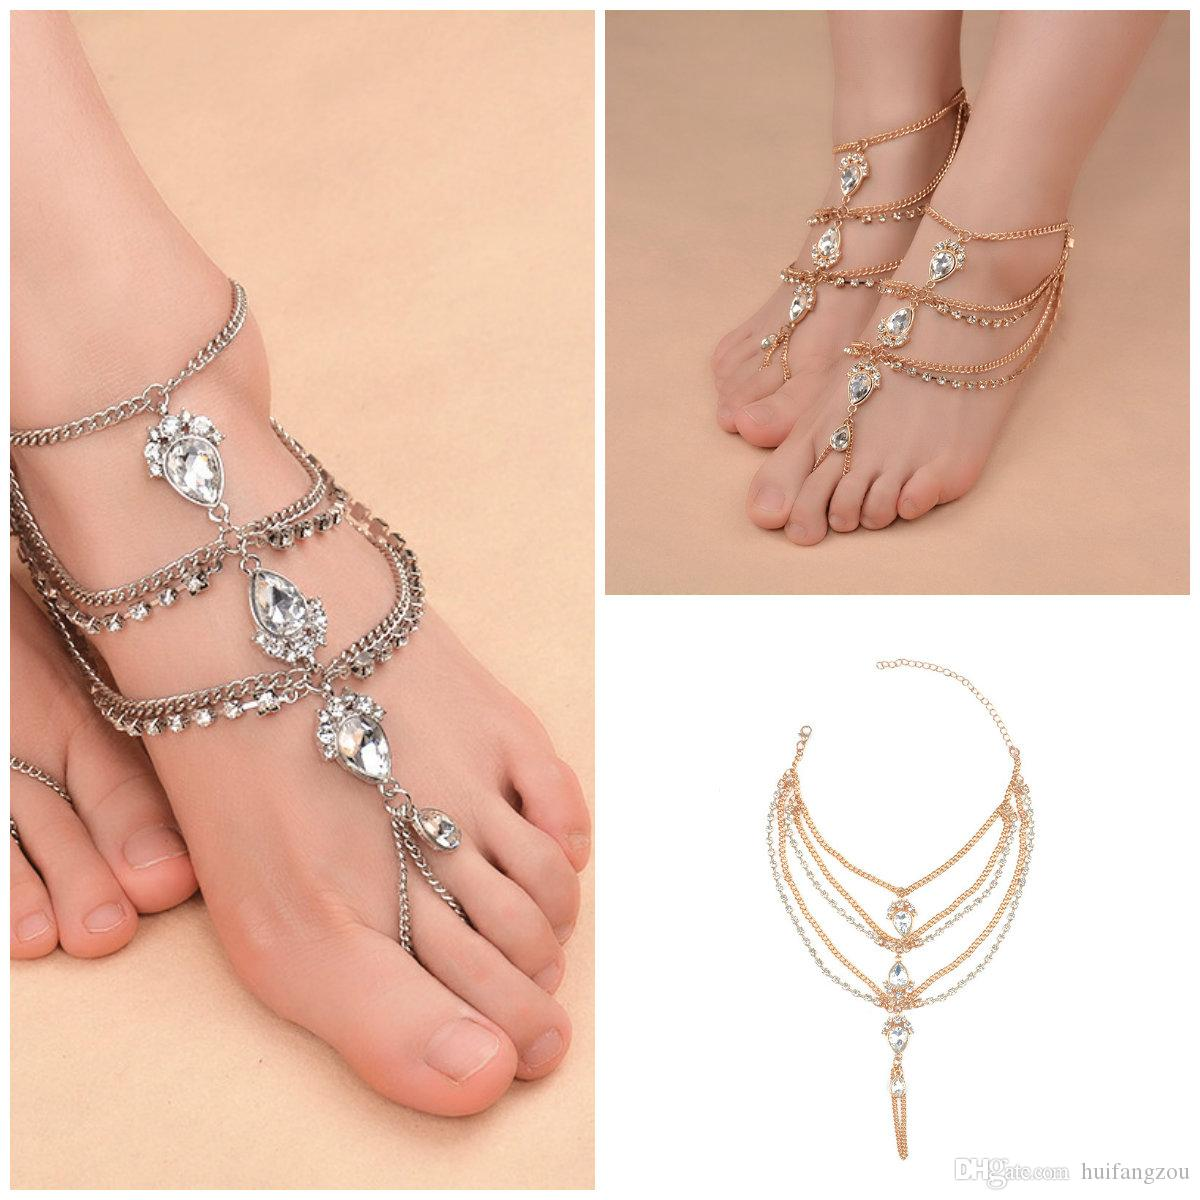 cool collections associated turquoise com meanings available with we of zenyogahub look range so here is anklet and love they leaves ankle pretty are boho bracelets unbelievable the color s just little bracelet pin